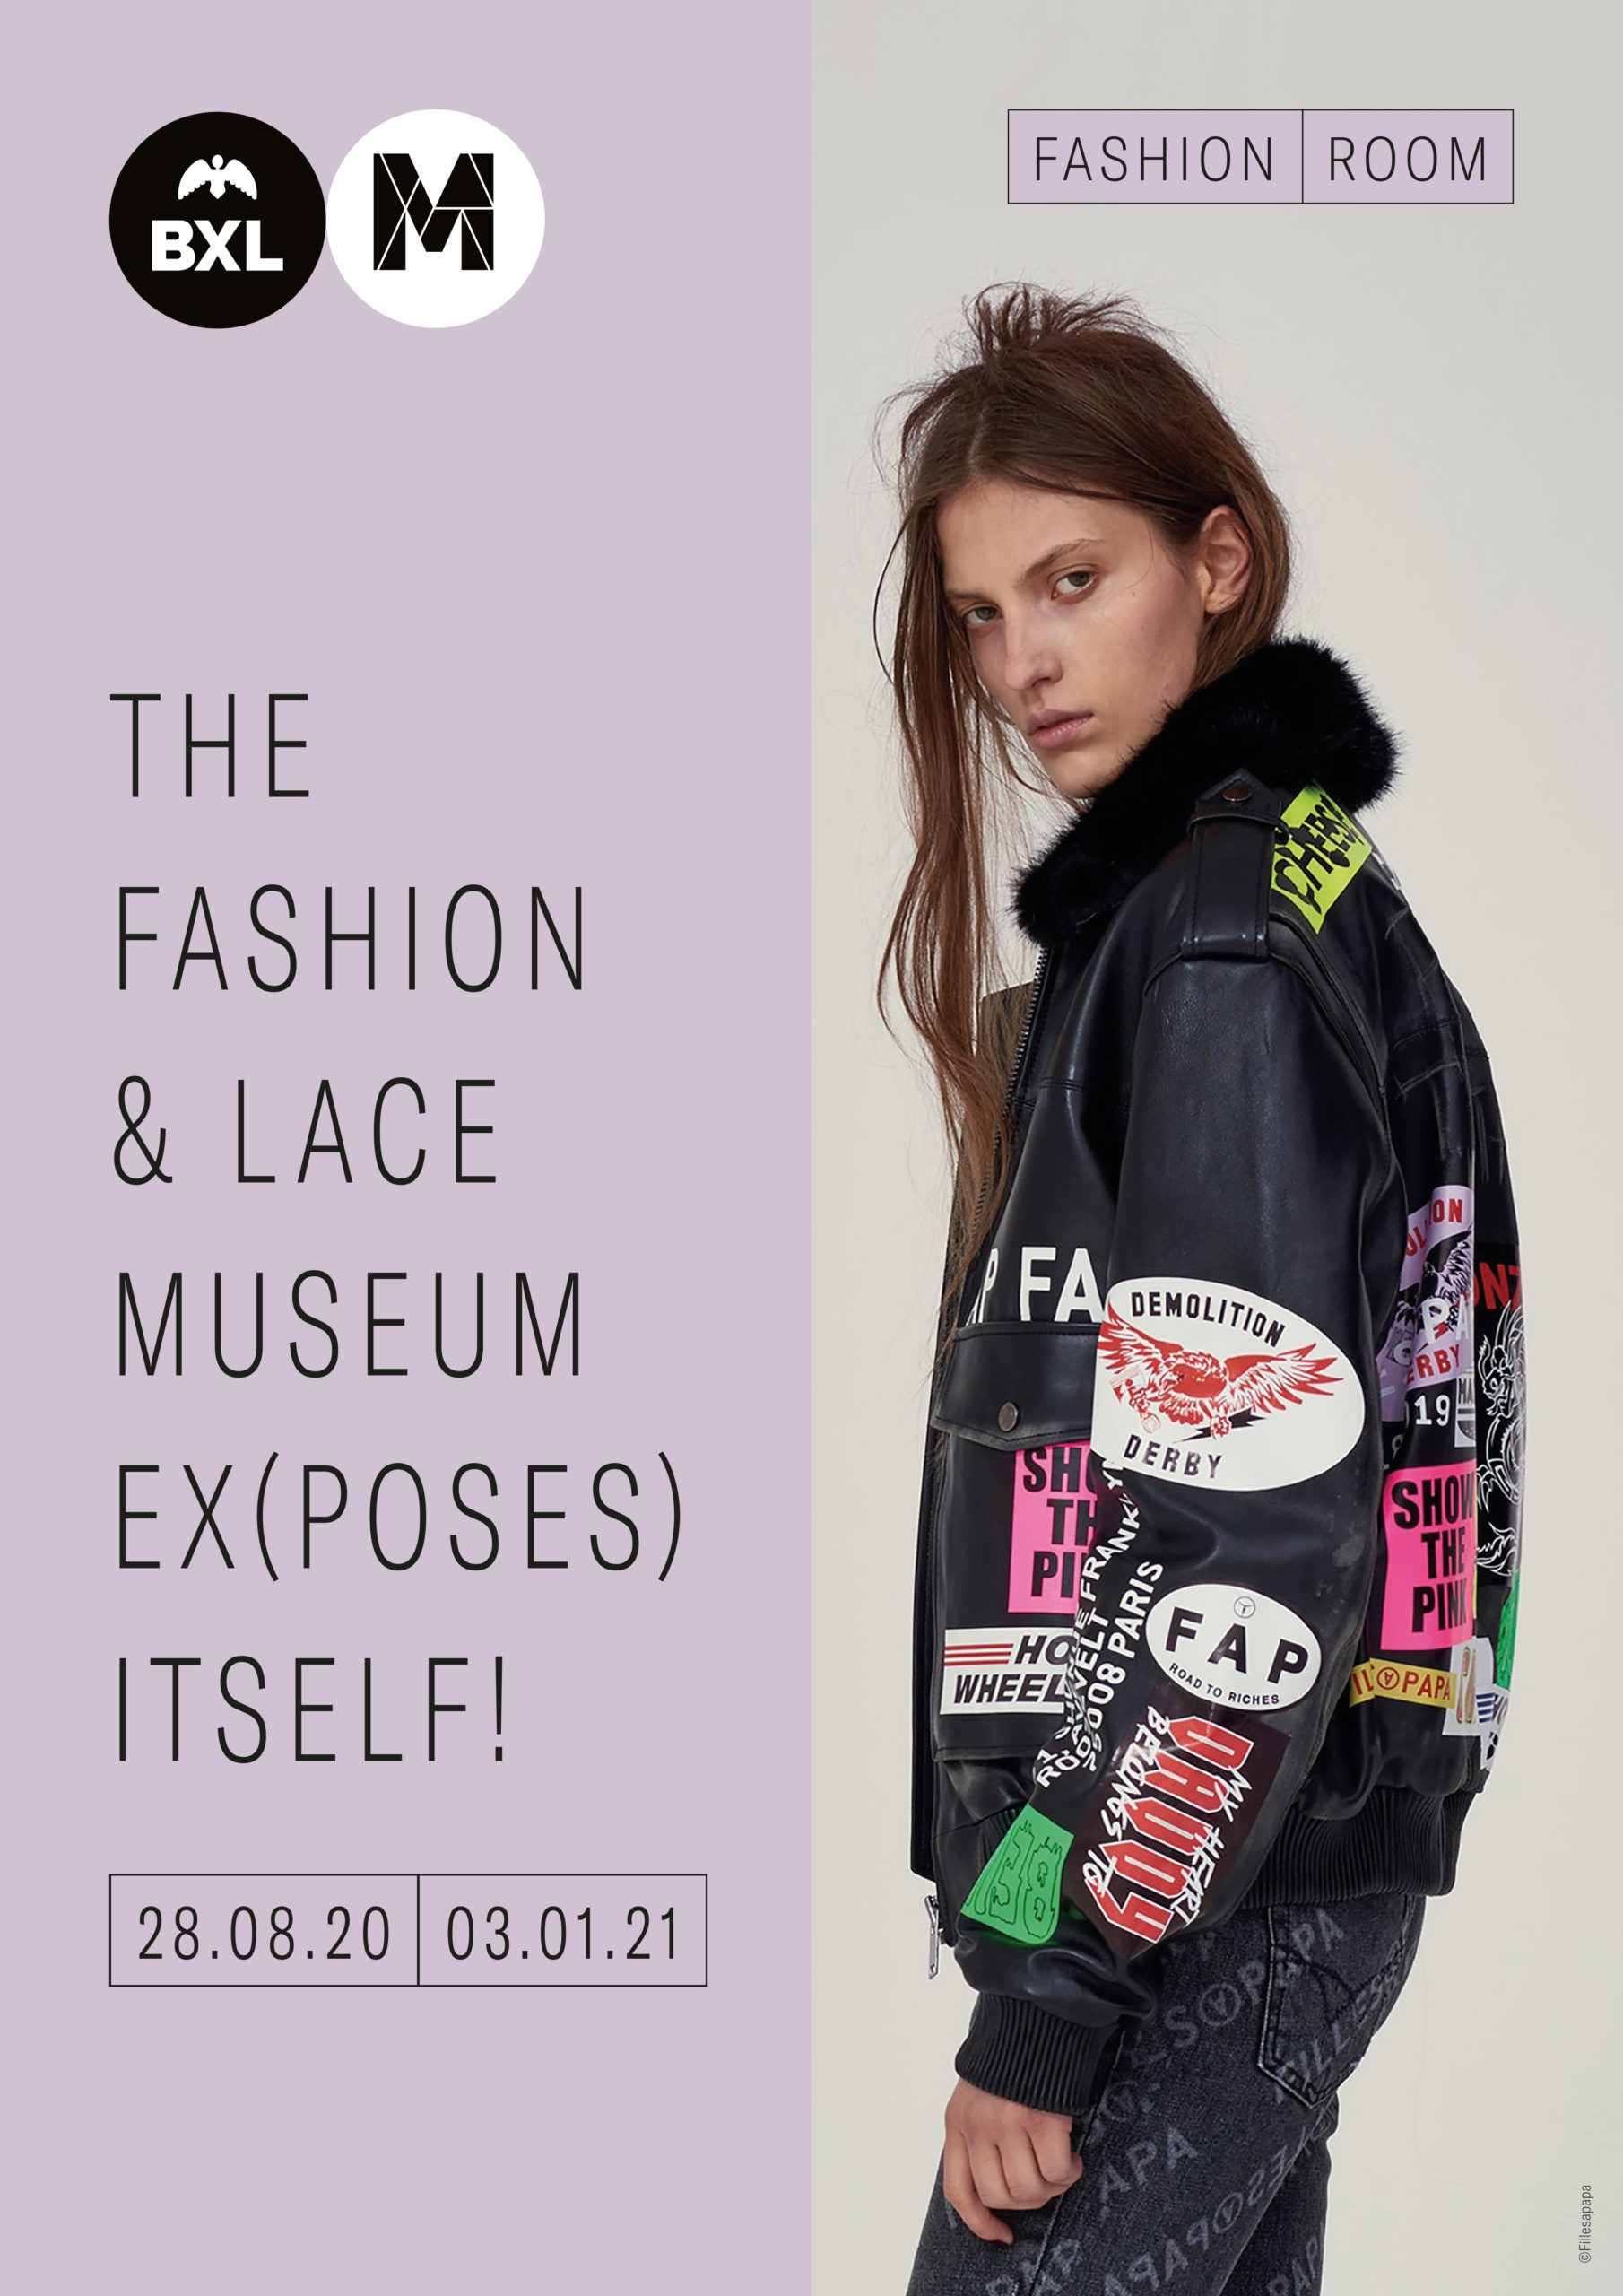 Fashion Room #2 : The fashion & lace museum ex(poses) itself! © Musee Mode & Dentelle